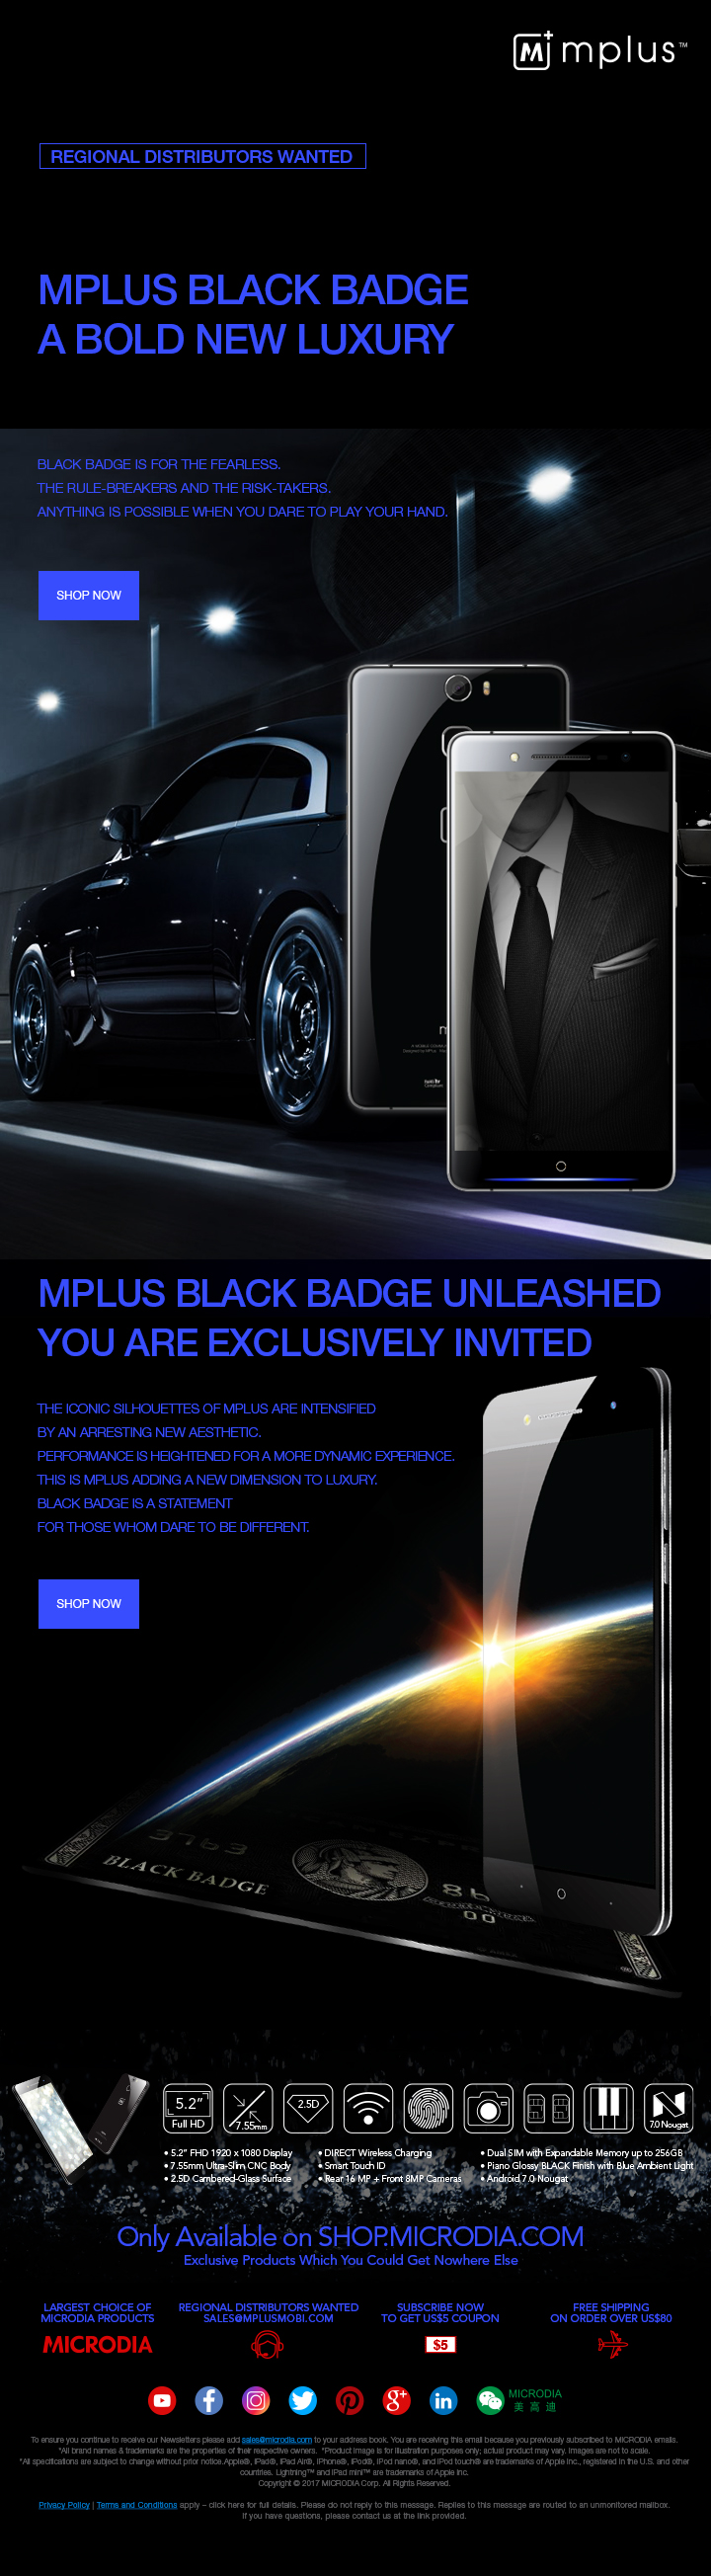 BLACK BADGE - A Bold New Luxury